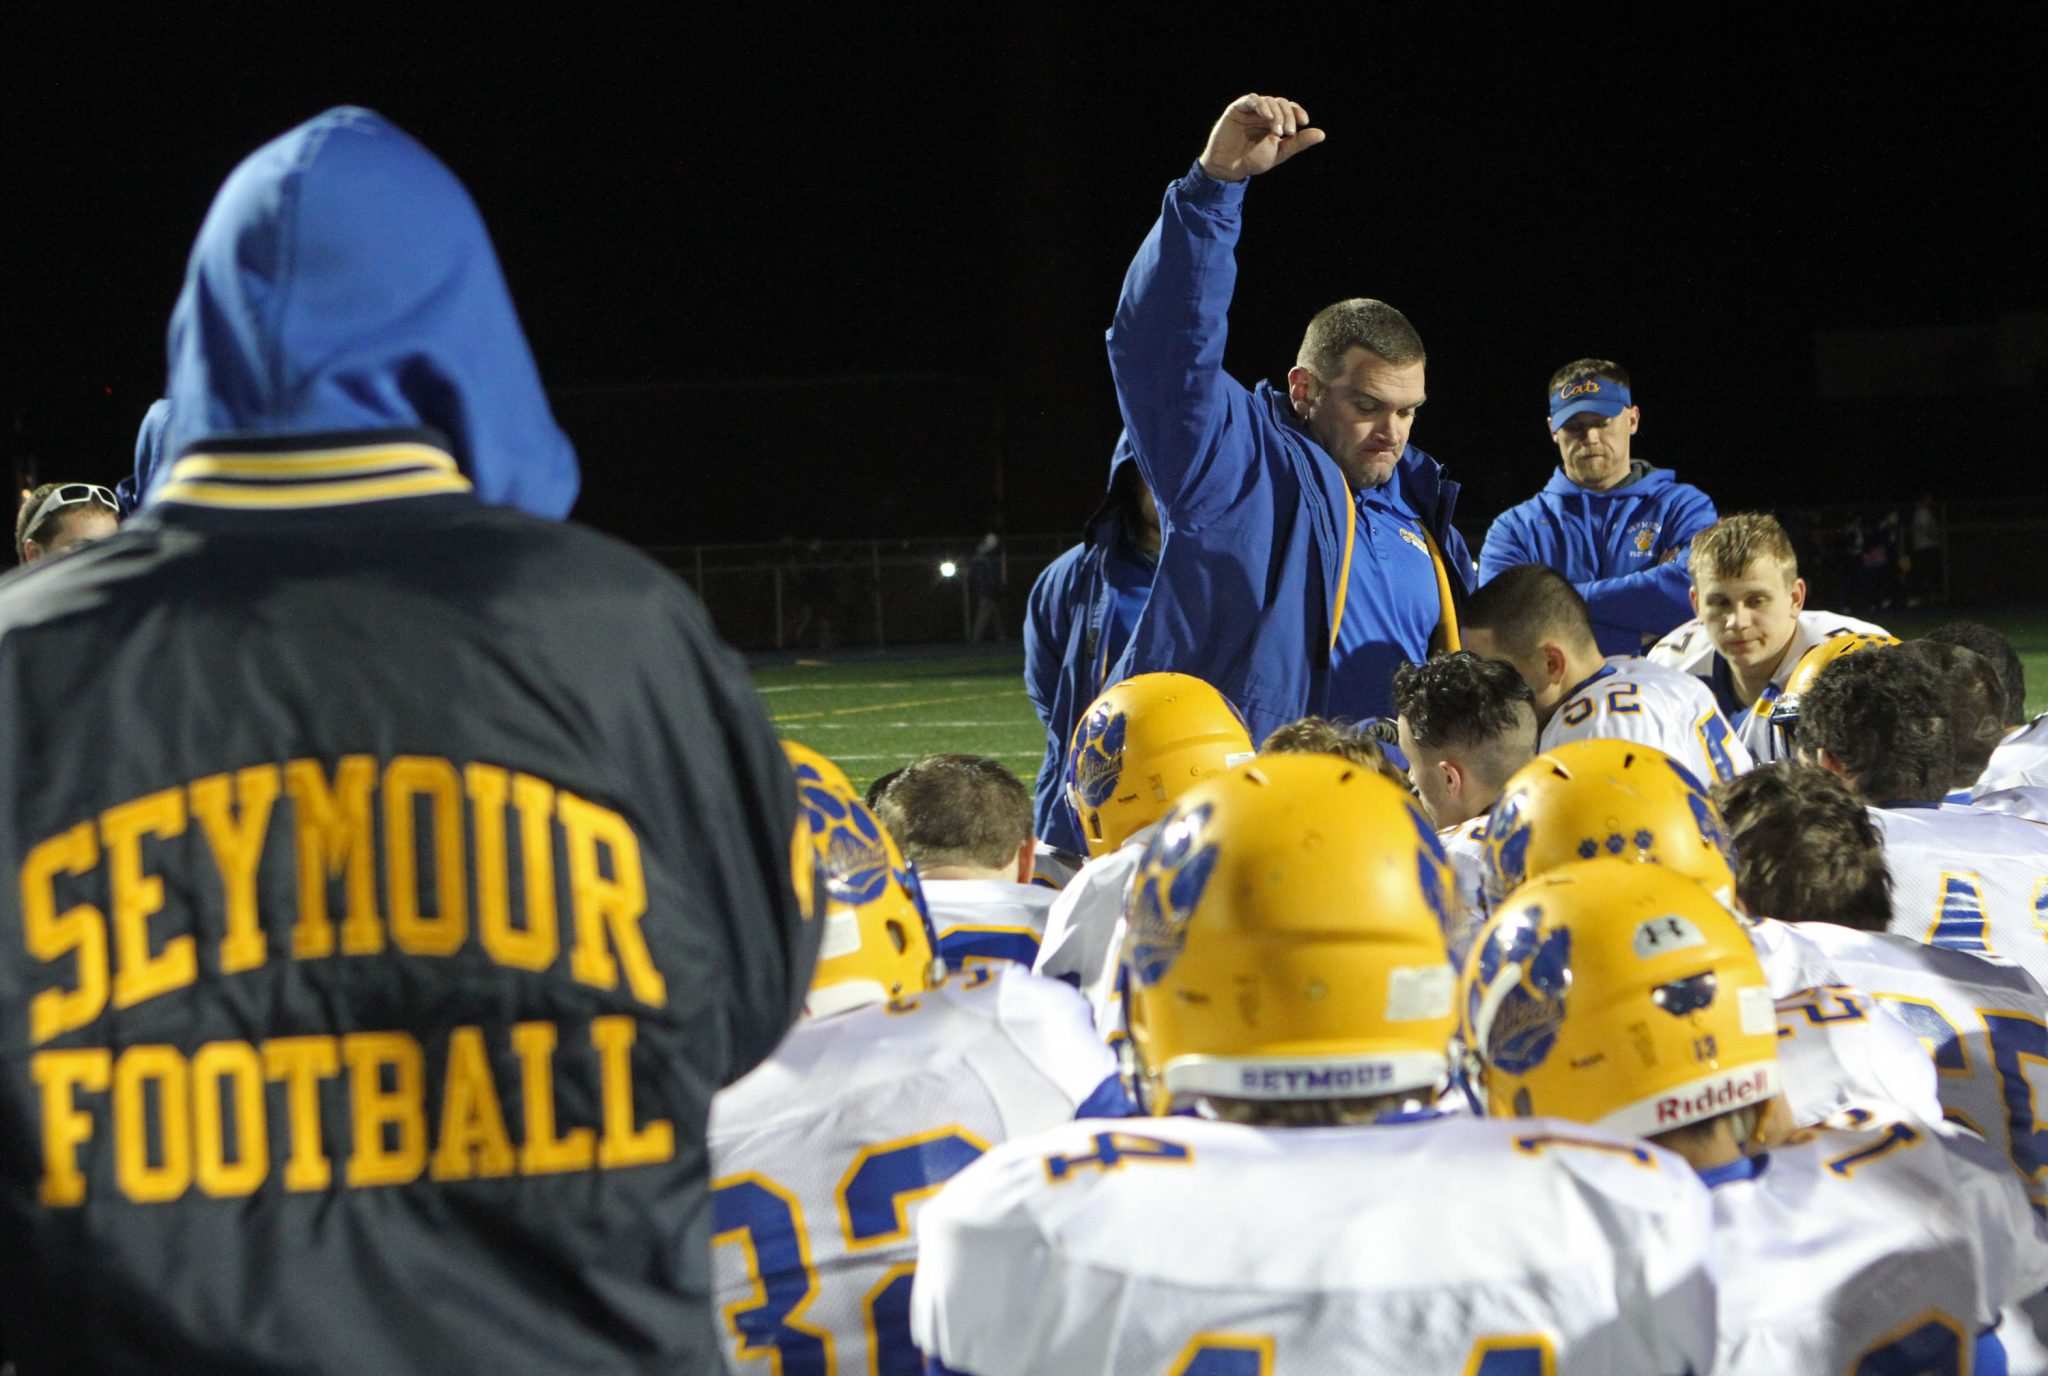 2015: Seymour's coach Tom Lennon encourages his team and reminds them how far they come after Class M semifinal action at Bloomfield High School. (RA)